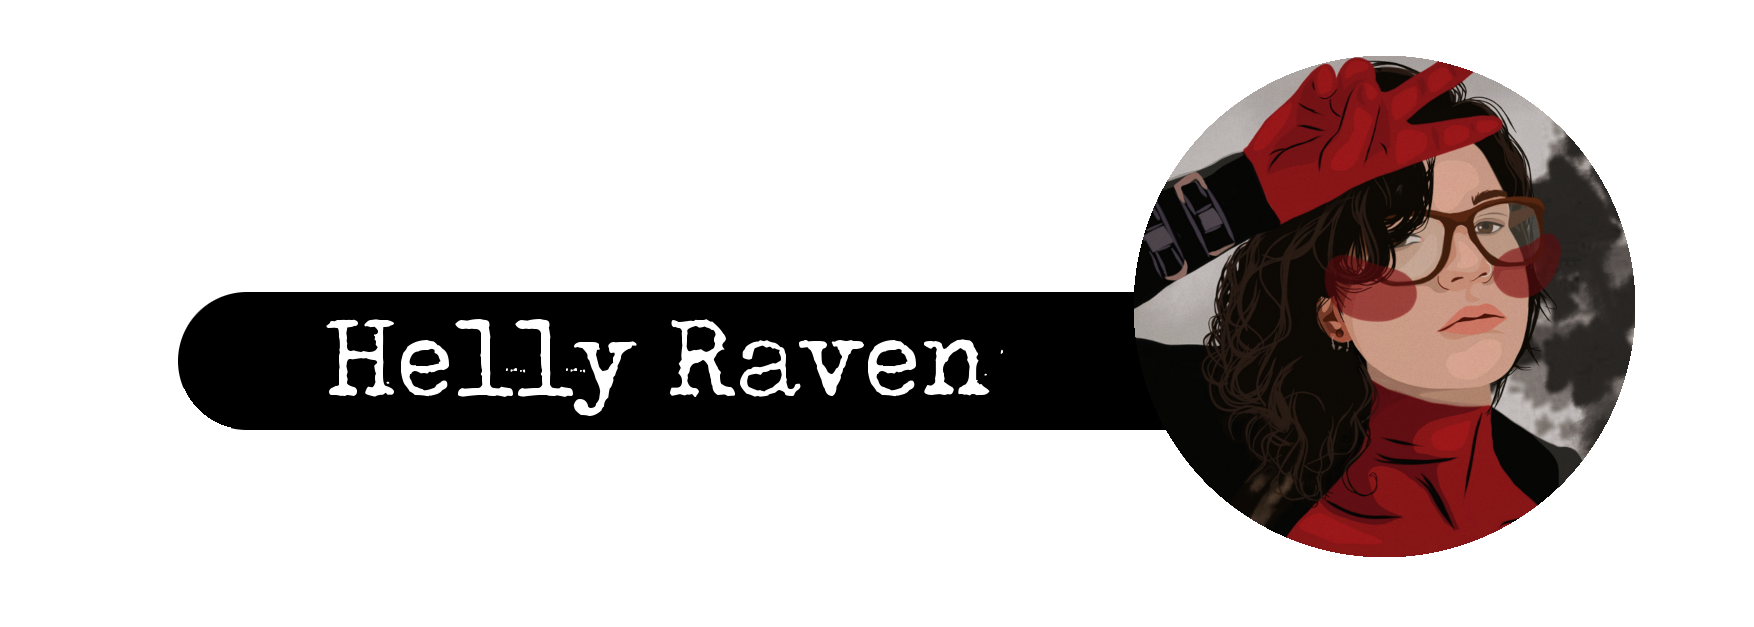 Helly Raven